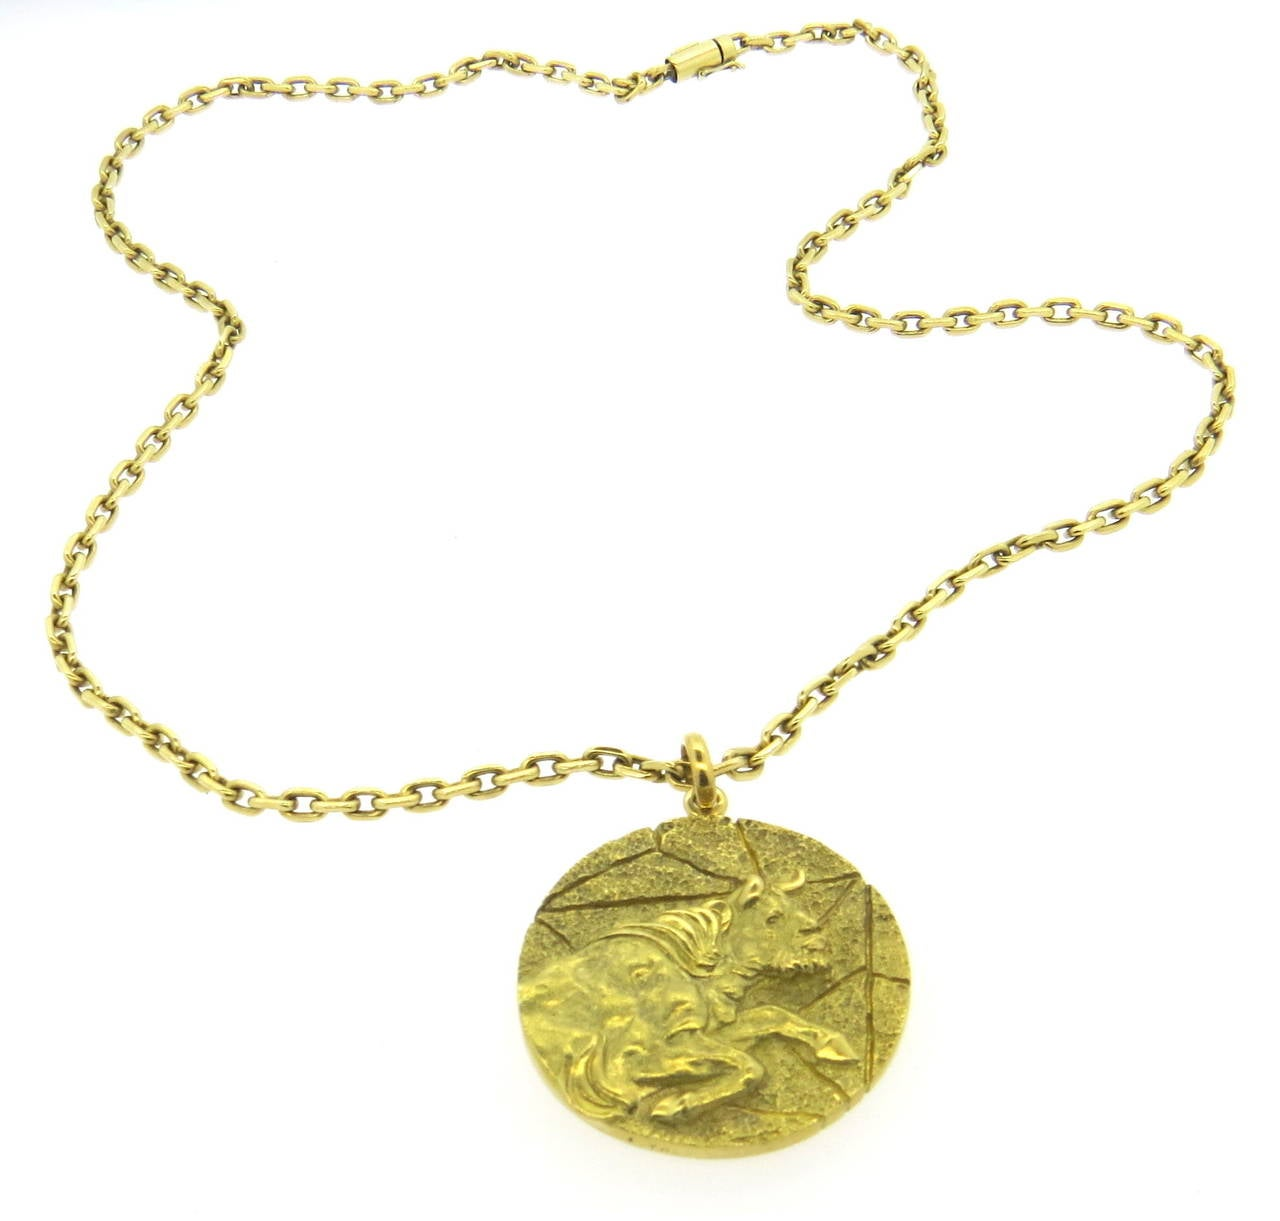 1970s and co gold taurus zodiac pendant necklace